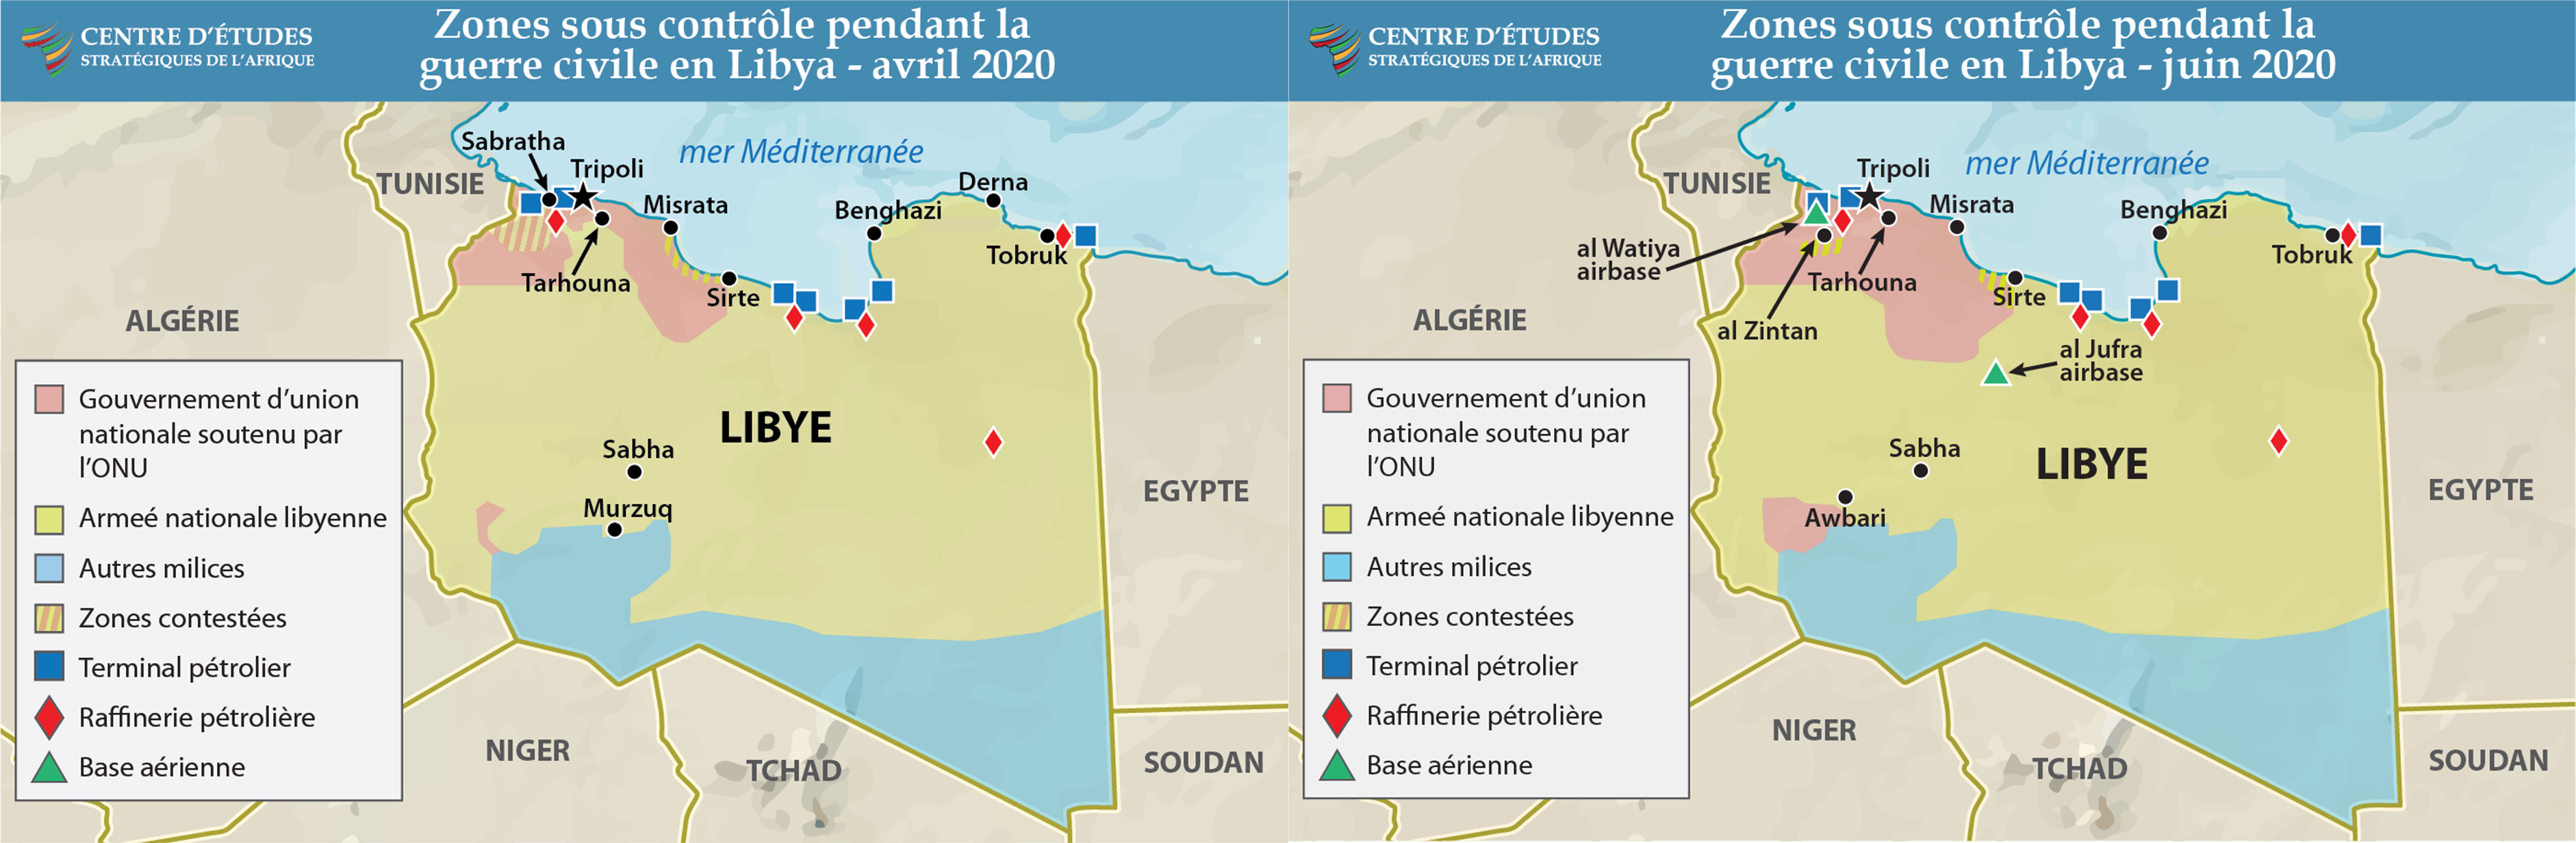 https://africacenter.org/wp-content/uploads/2020/07/fr_libya-map-April-and-June-2020-for-page.png